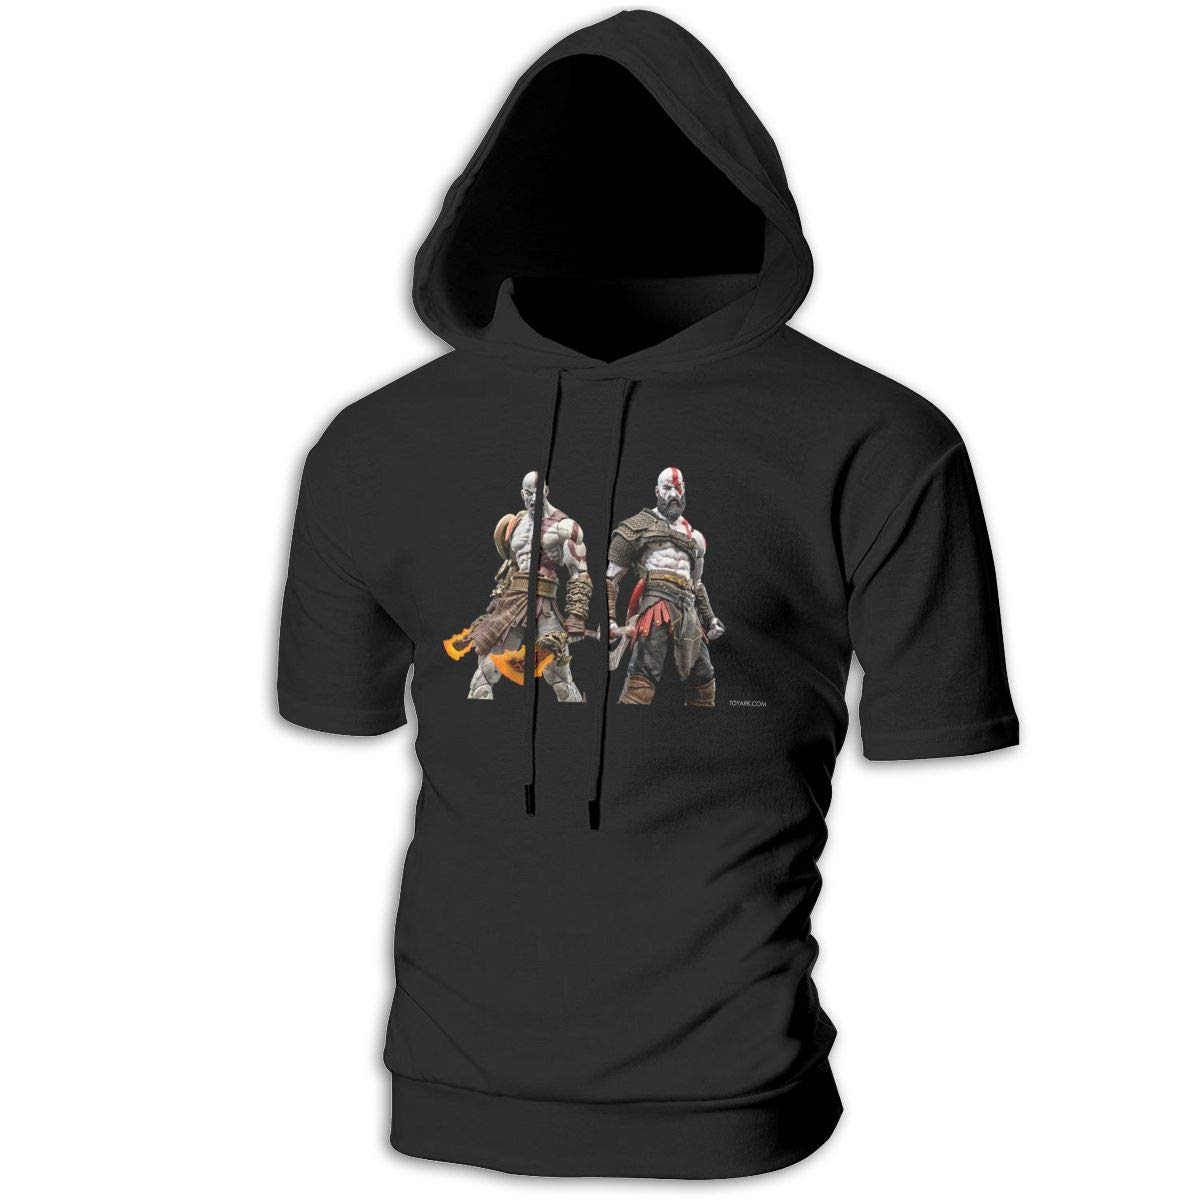 SHENGN Customized Mans with Hood Humor Kratos God of War 2018 Sweaters